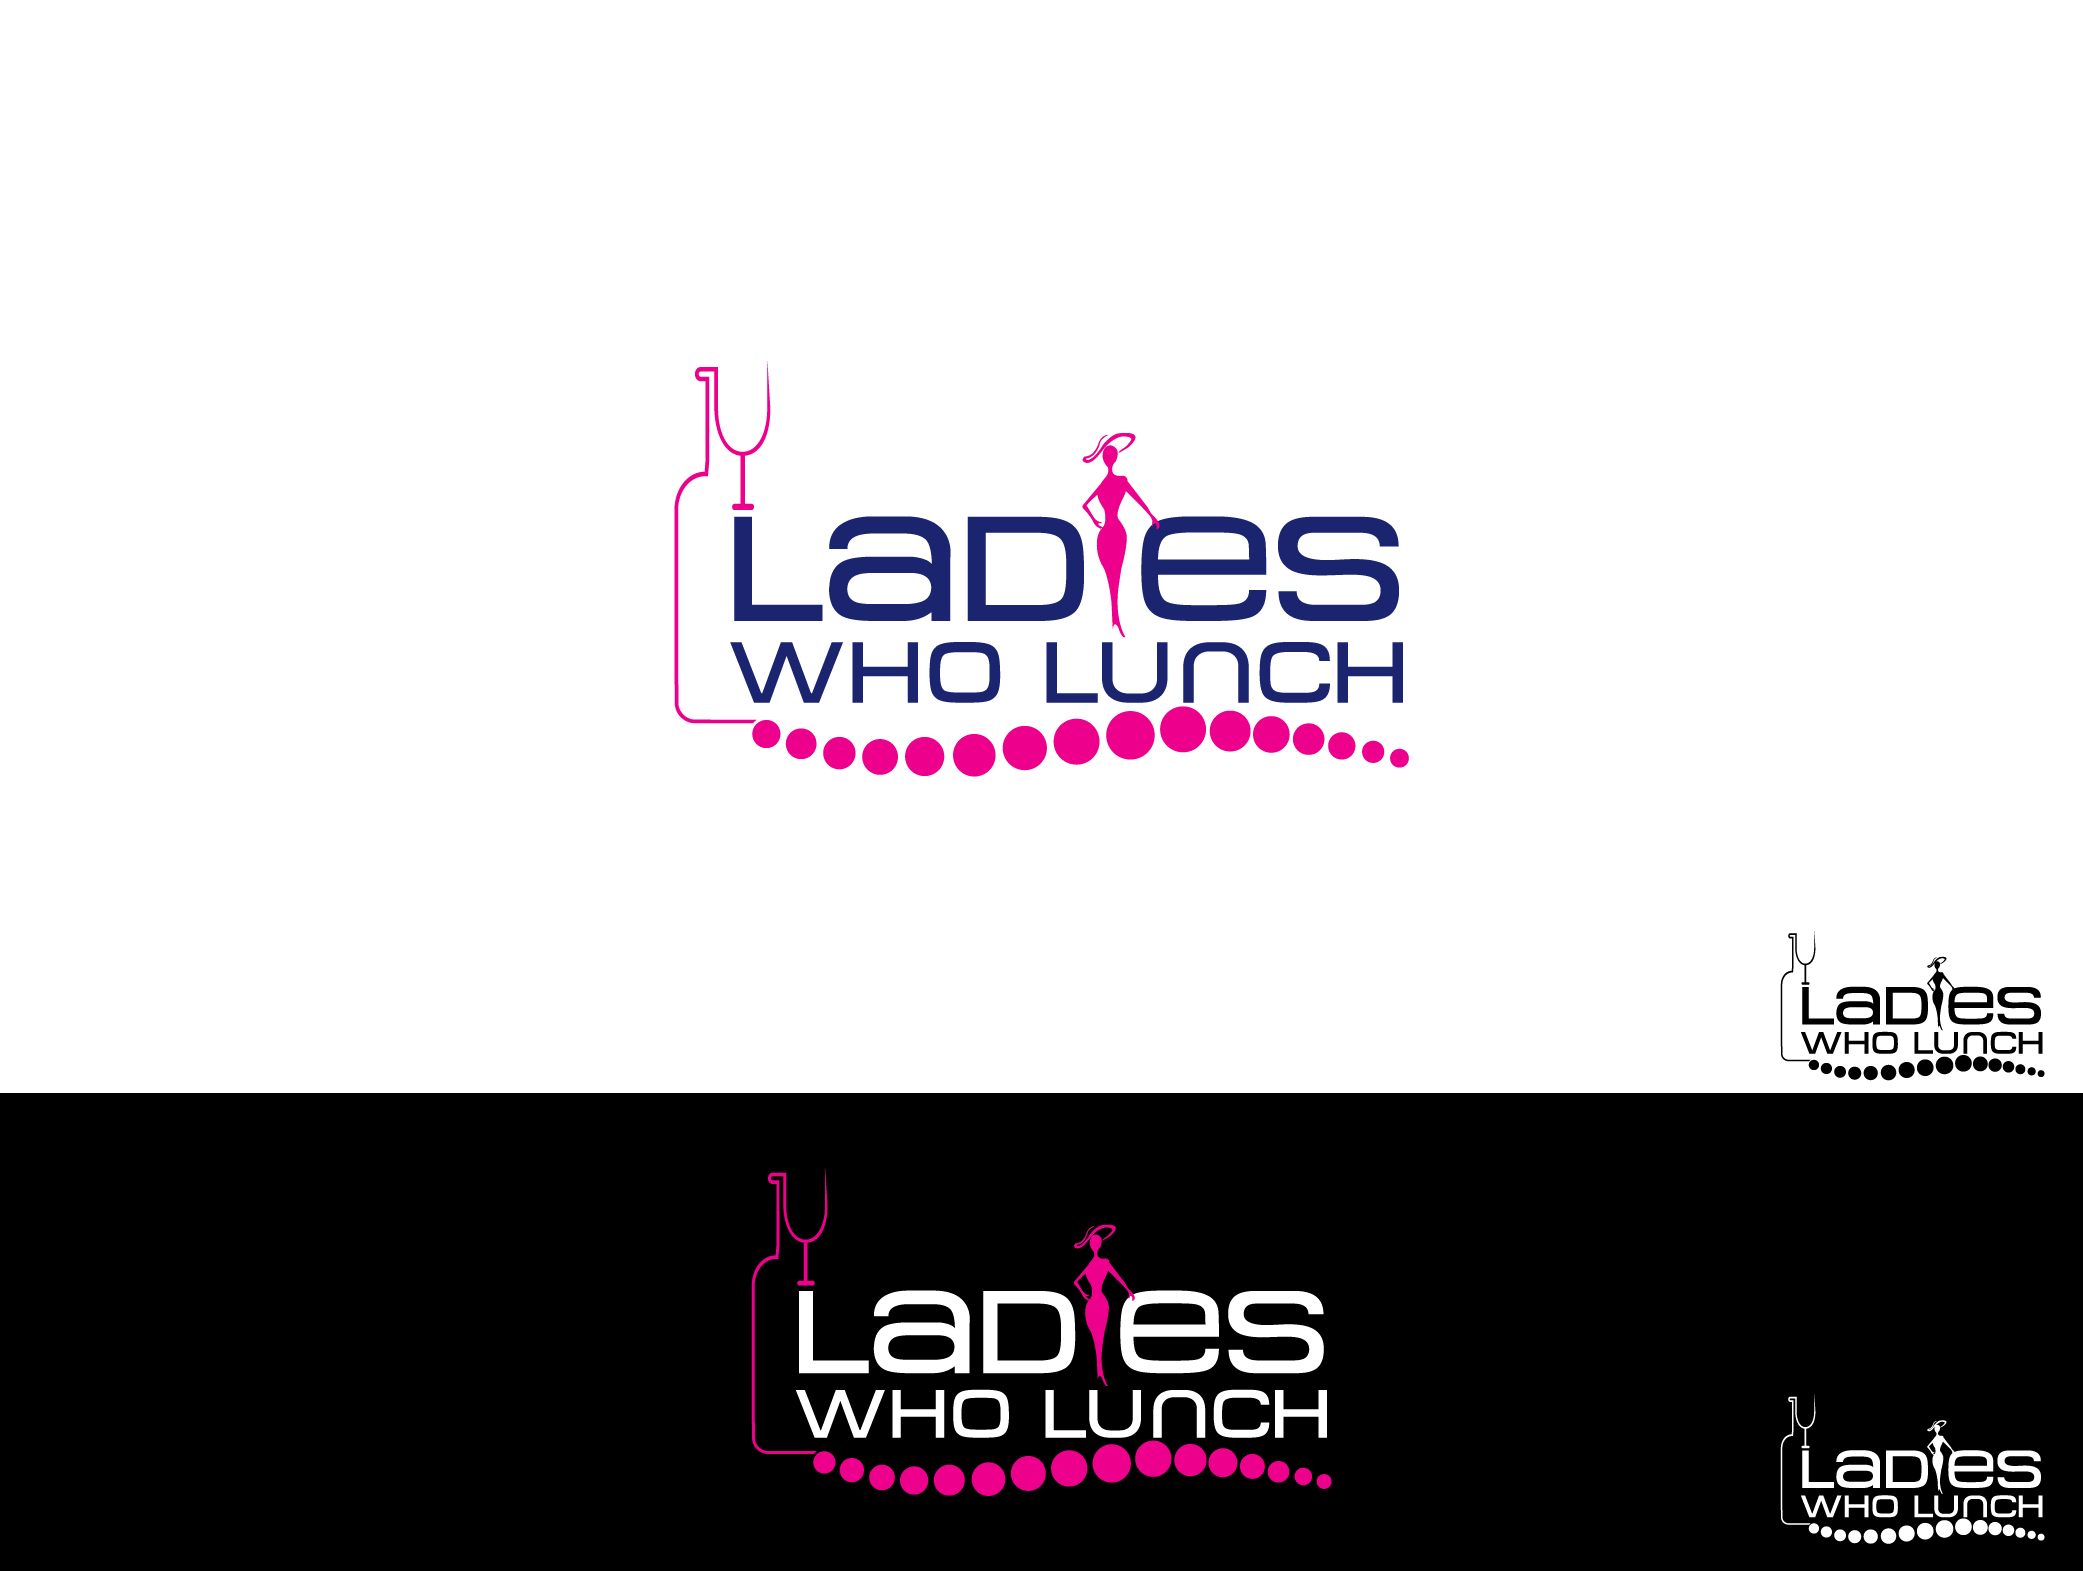 Ladies Who Lunch - Transportation Logo